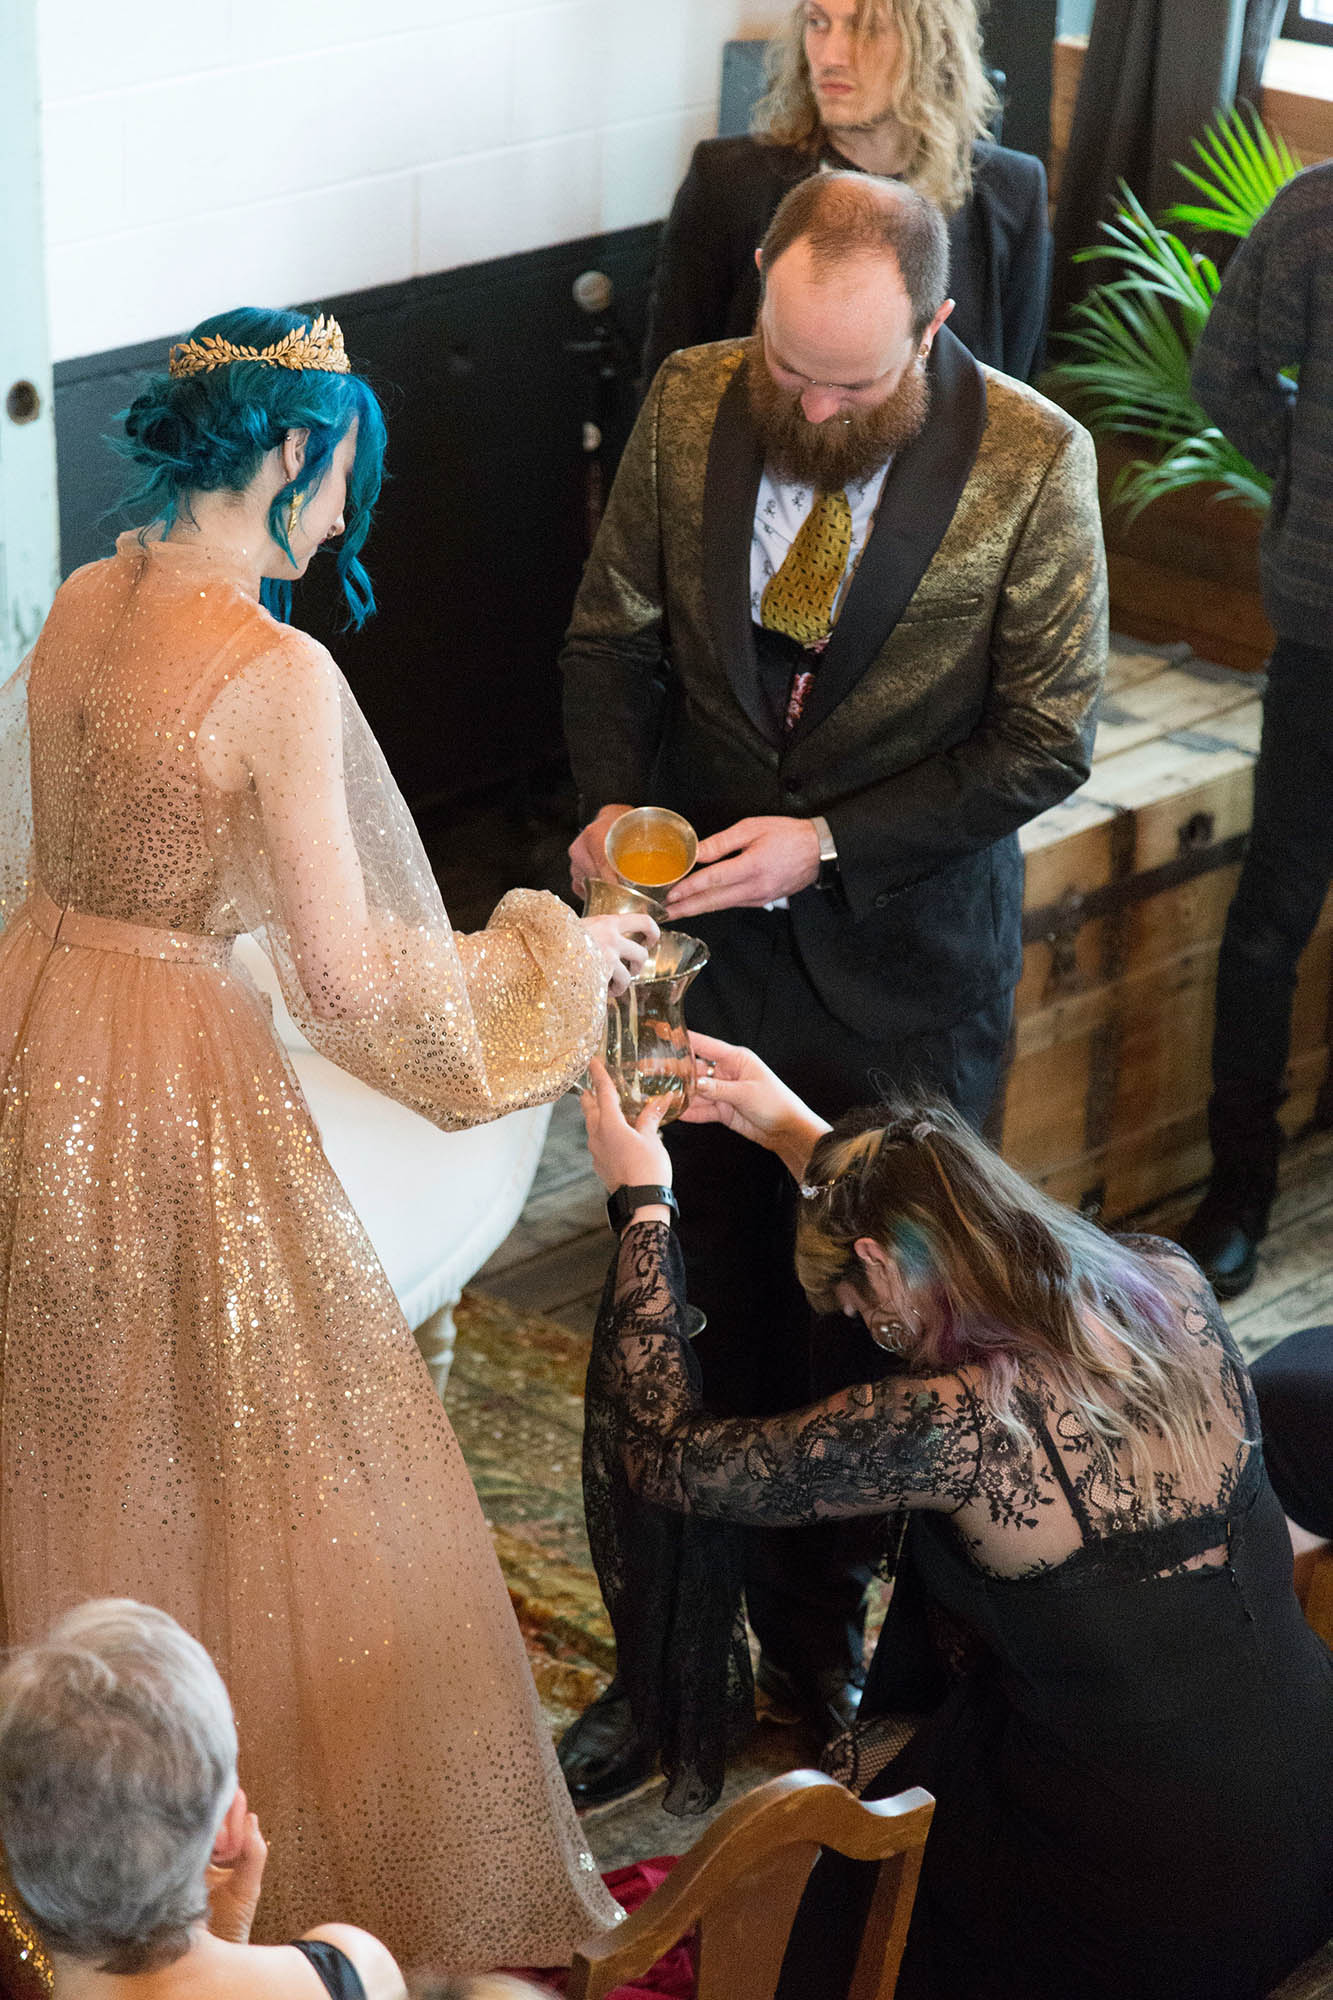 Bride and Groom Pour Edible Glitter into Chalice at Goth Wedding Ceremony